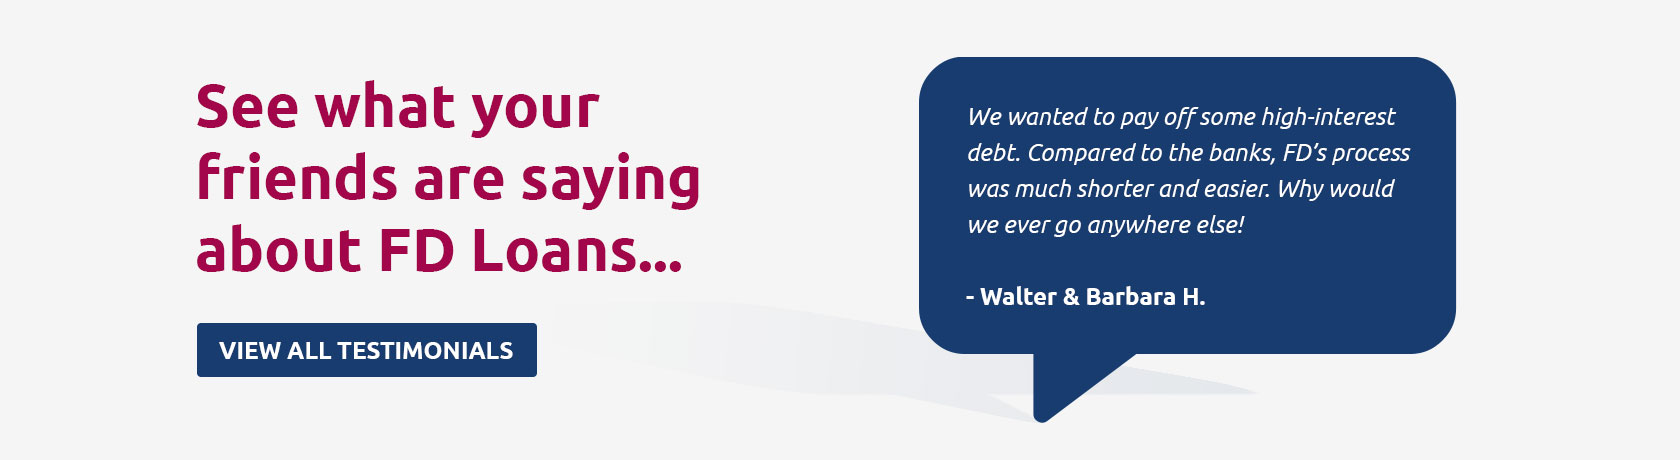 See what your friends are saying about FD Loans... We wanted to pay off some high-interest debt. Compared to the banks, FD's process was much shorter and easier. Why would we ever go anywhere else! - Walter & Barbara H. View all testimonials